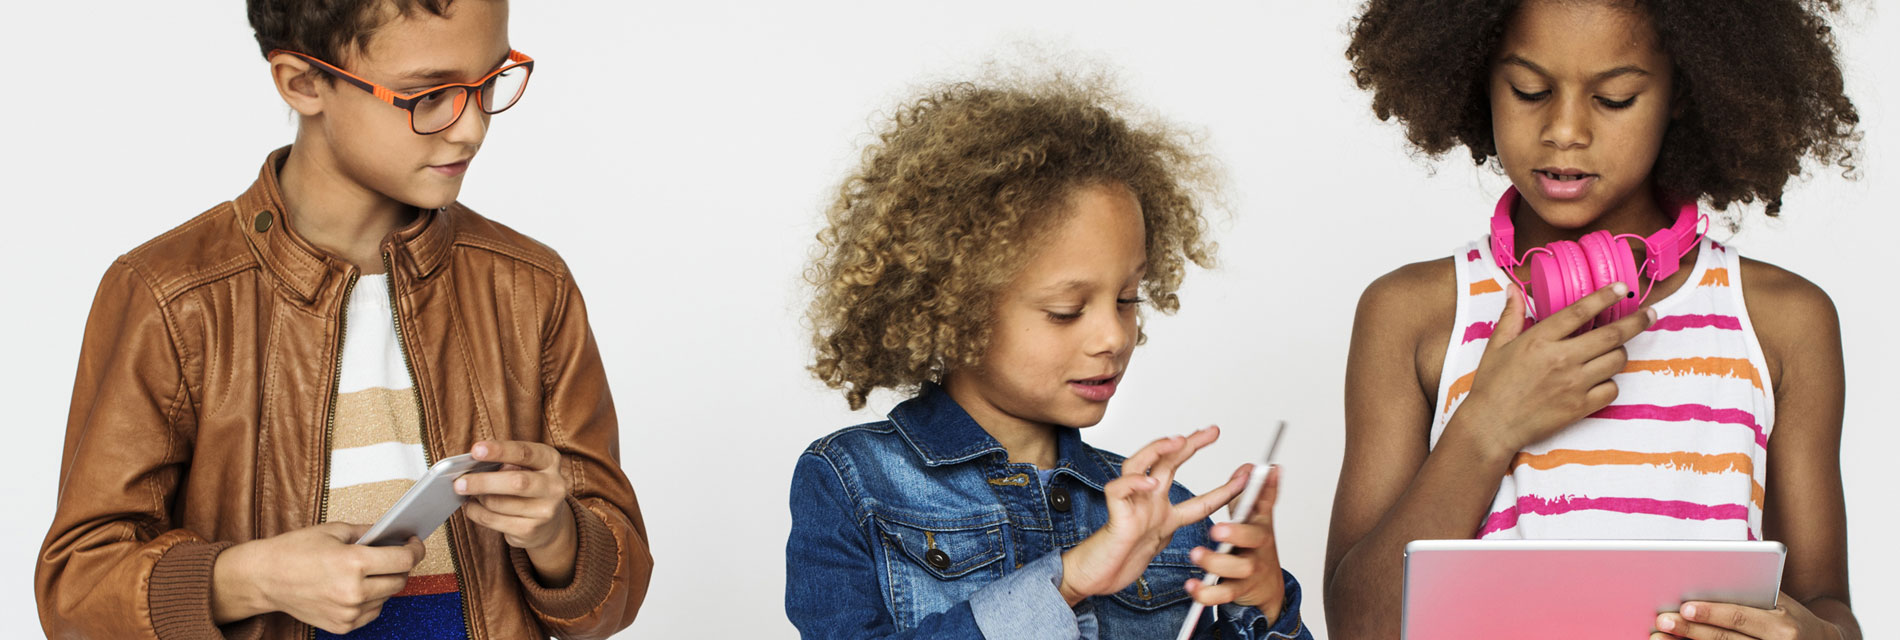 Children playng on tablets / phones